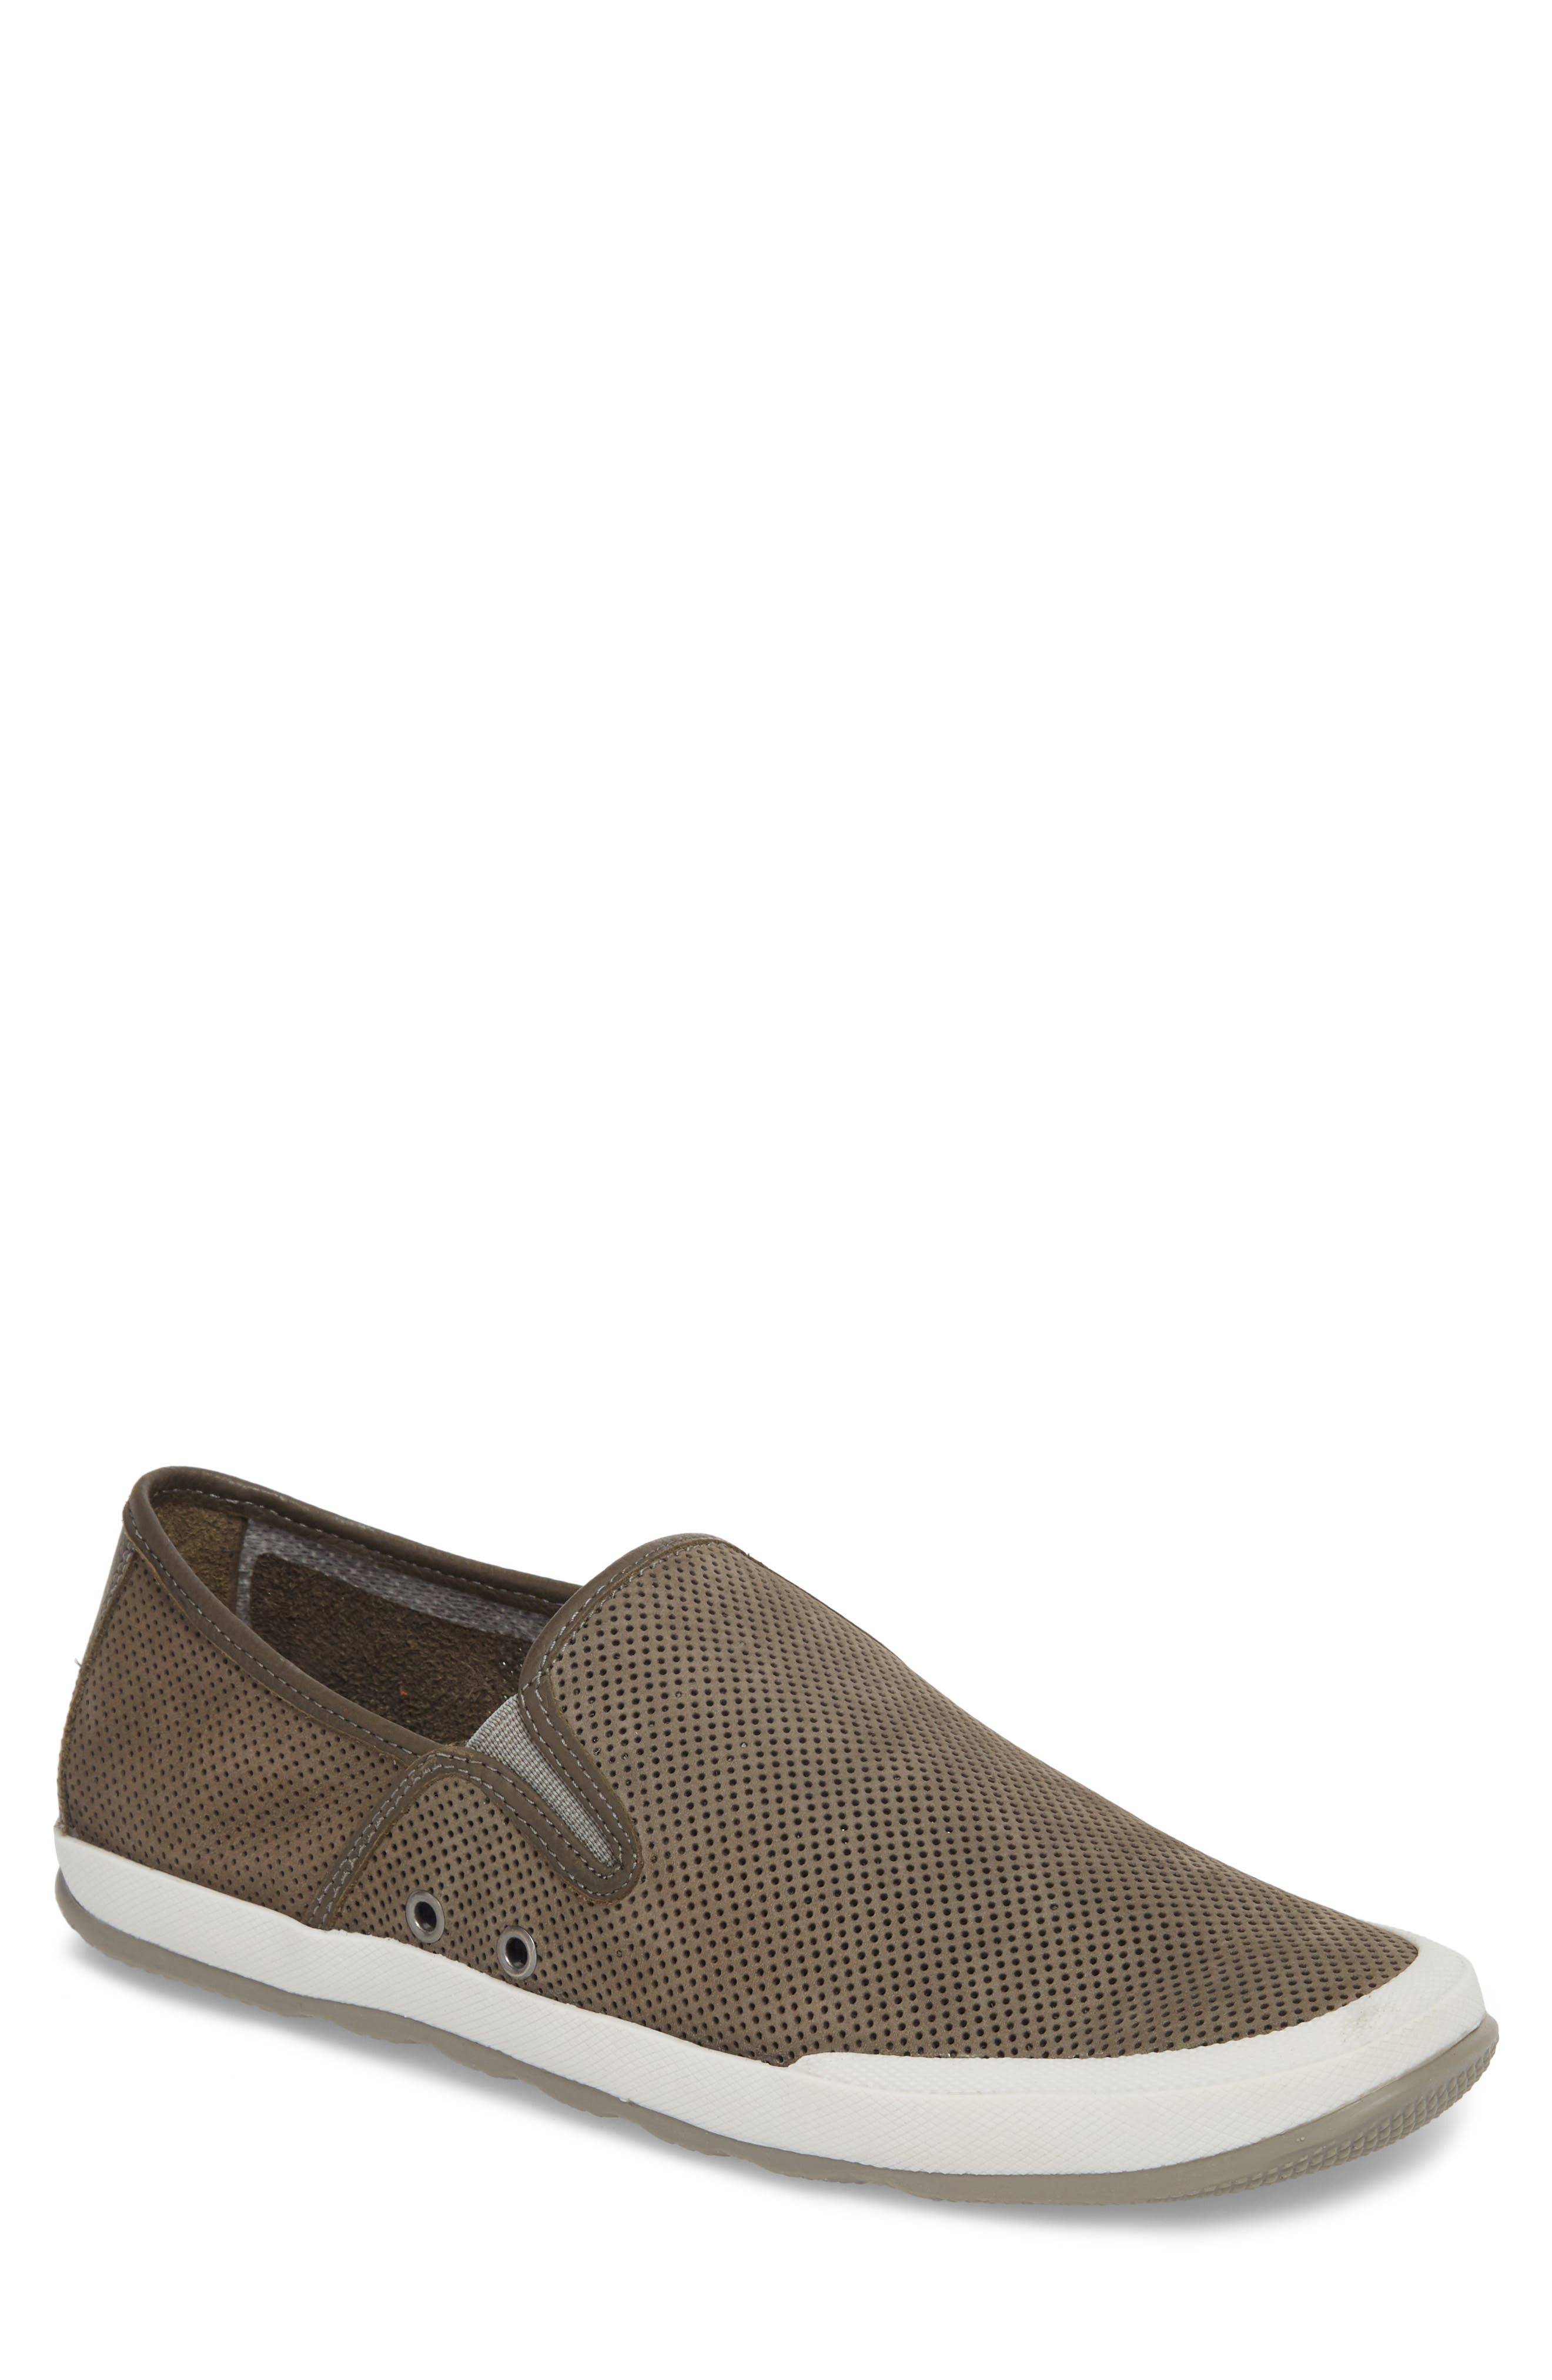 'Mullen' Slip-On,                             Main thumbnail 1, color,                             Grey Perfed Nubuck